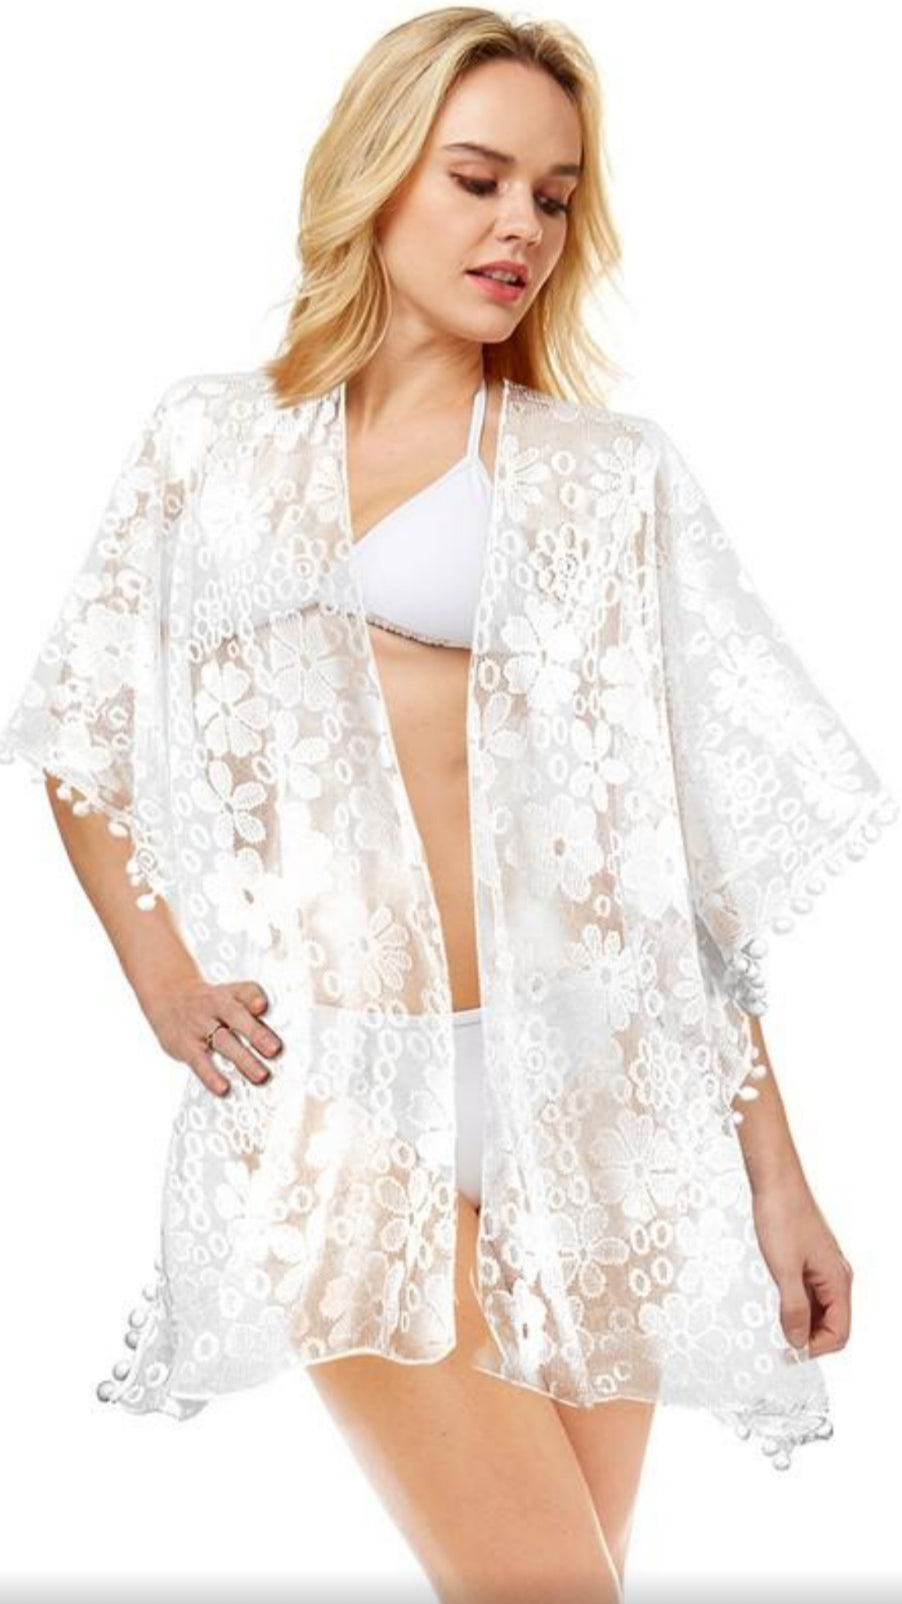 Sheer Floral Lace Cover Up - White